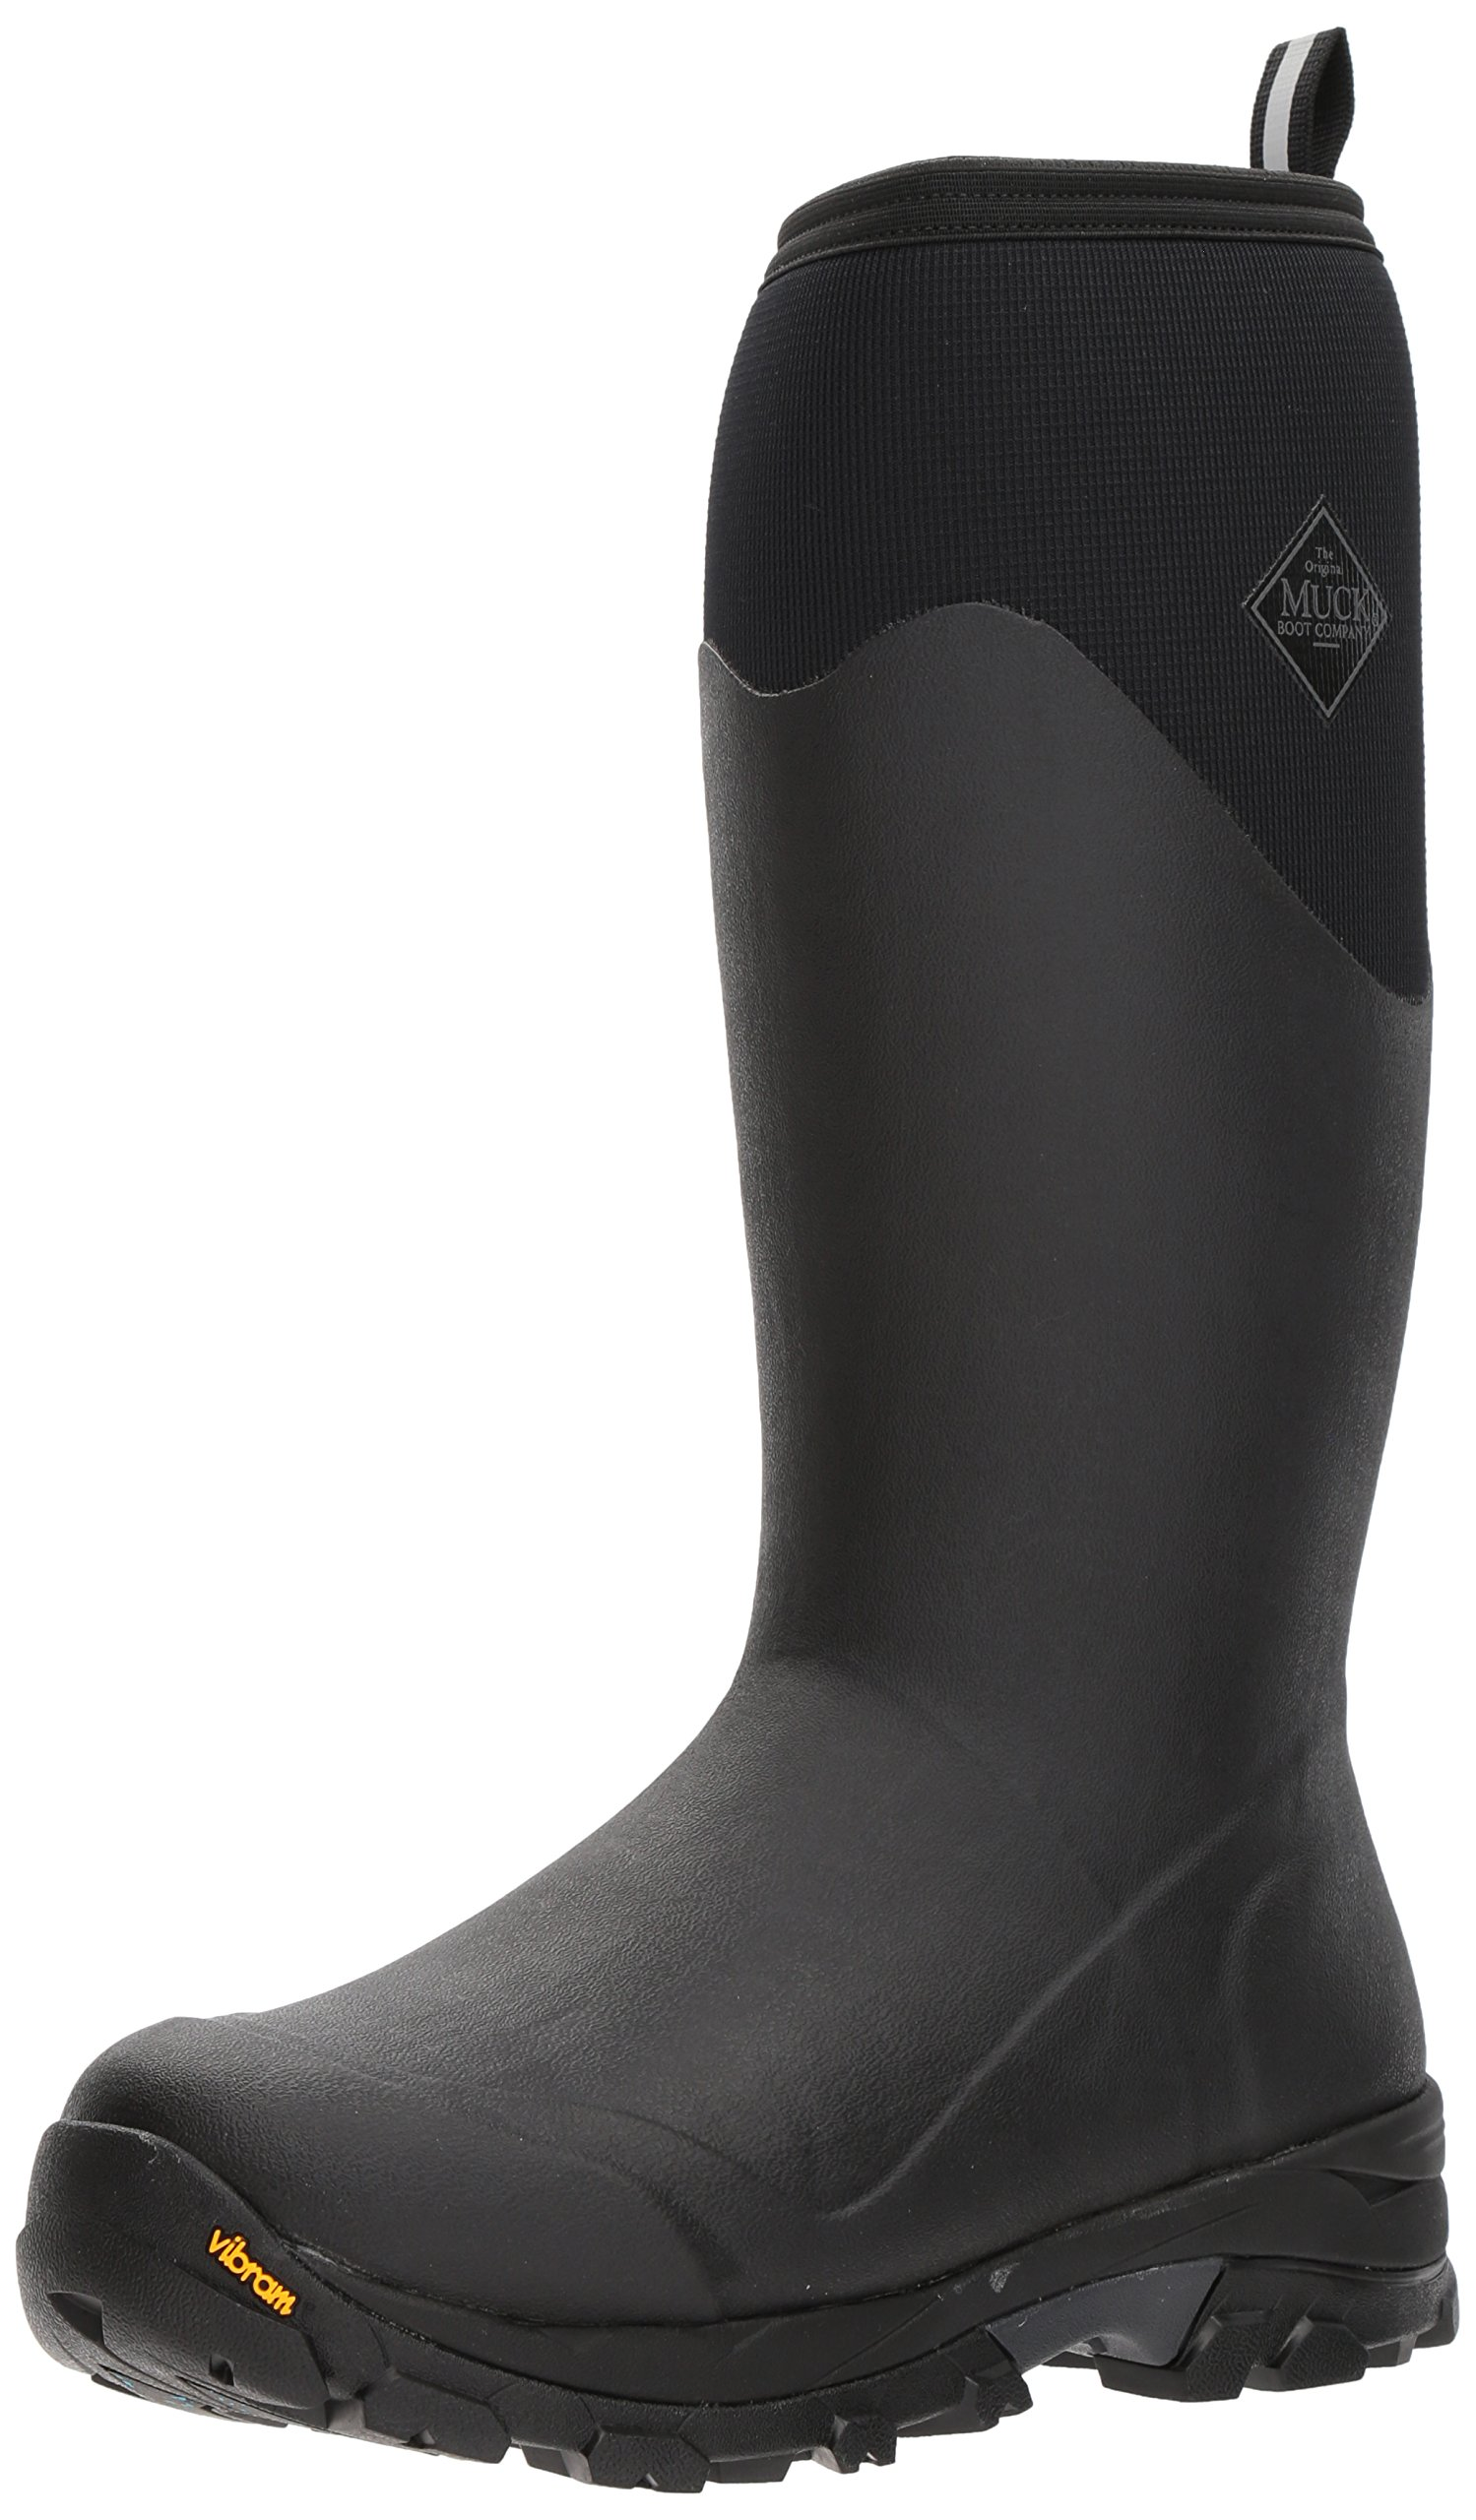 Muck Arctic Ice Extreme Conditions Tall Rubber Men's Winter Boots with Arctic Grip Outsole by Muck Boot